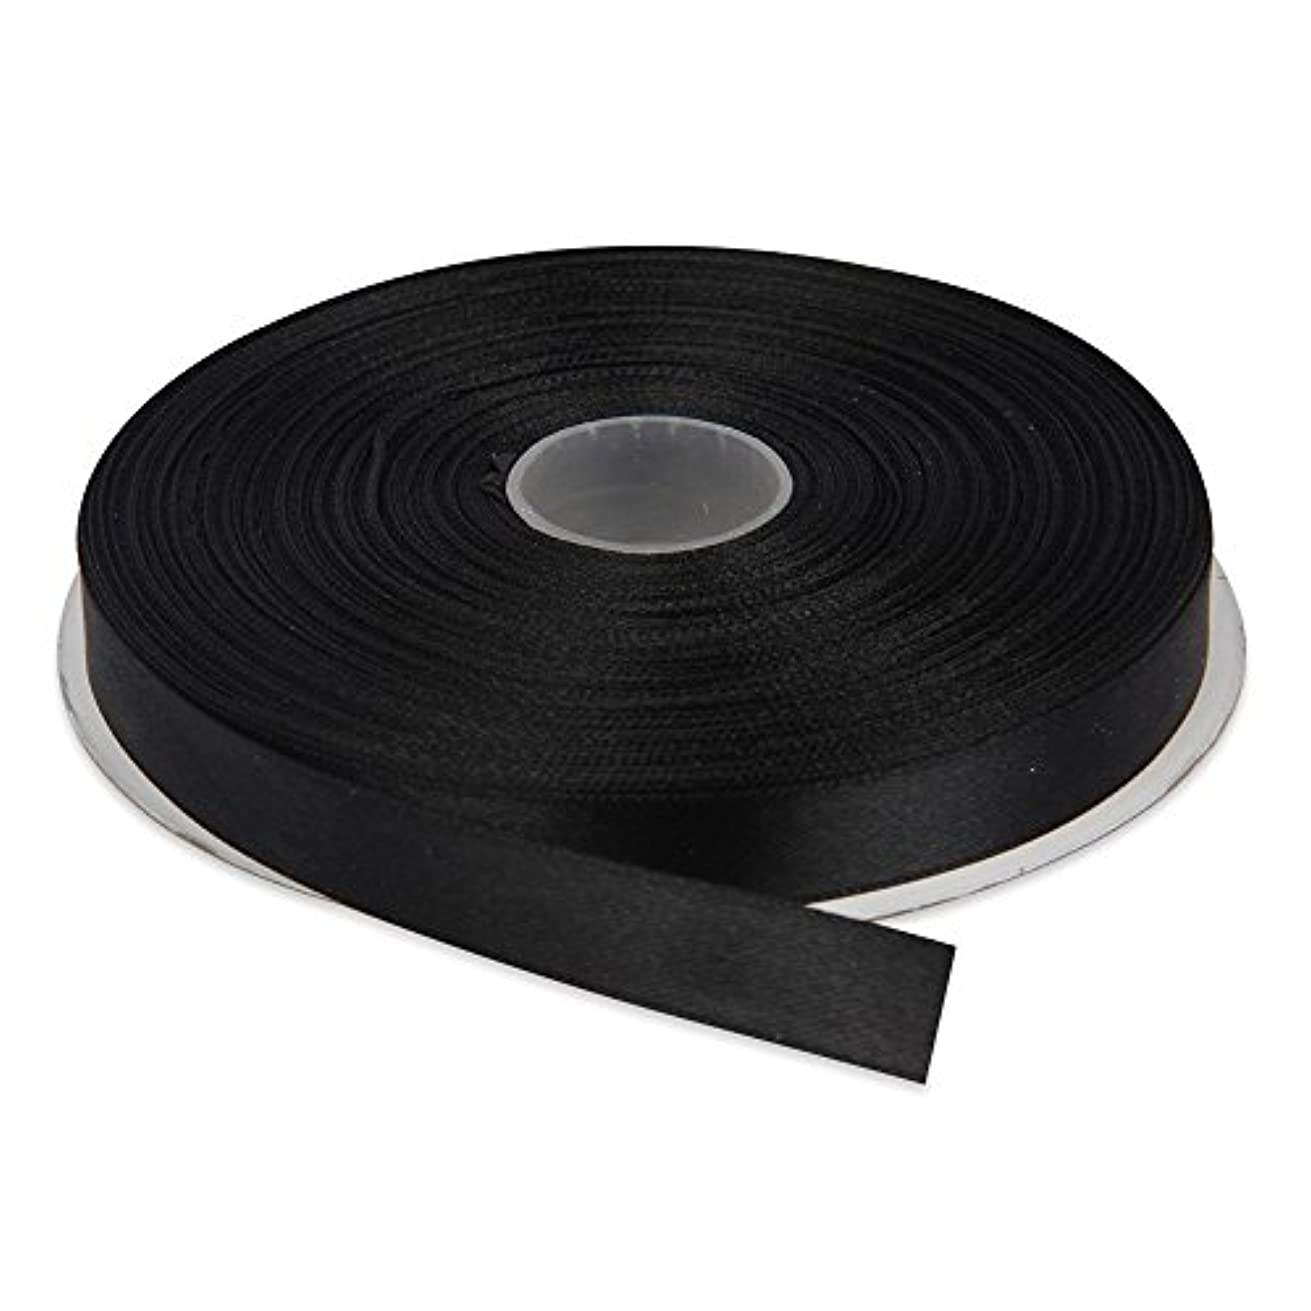 Topenca Supplies 1/2 Inches x 50 Yards Double Face Solid Satin Ribbon Roll, Black